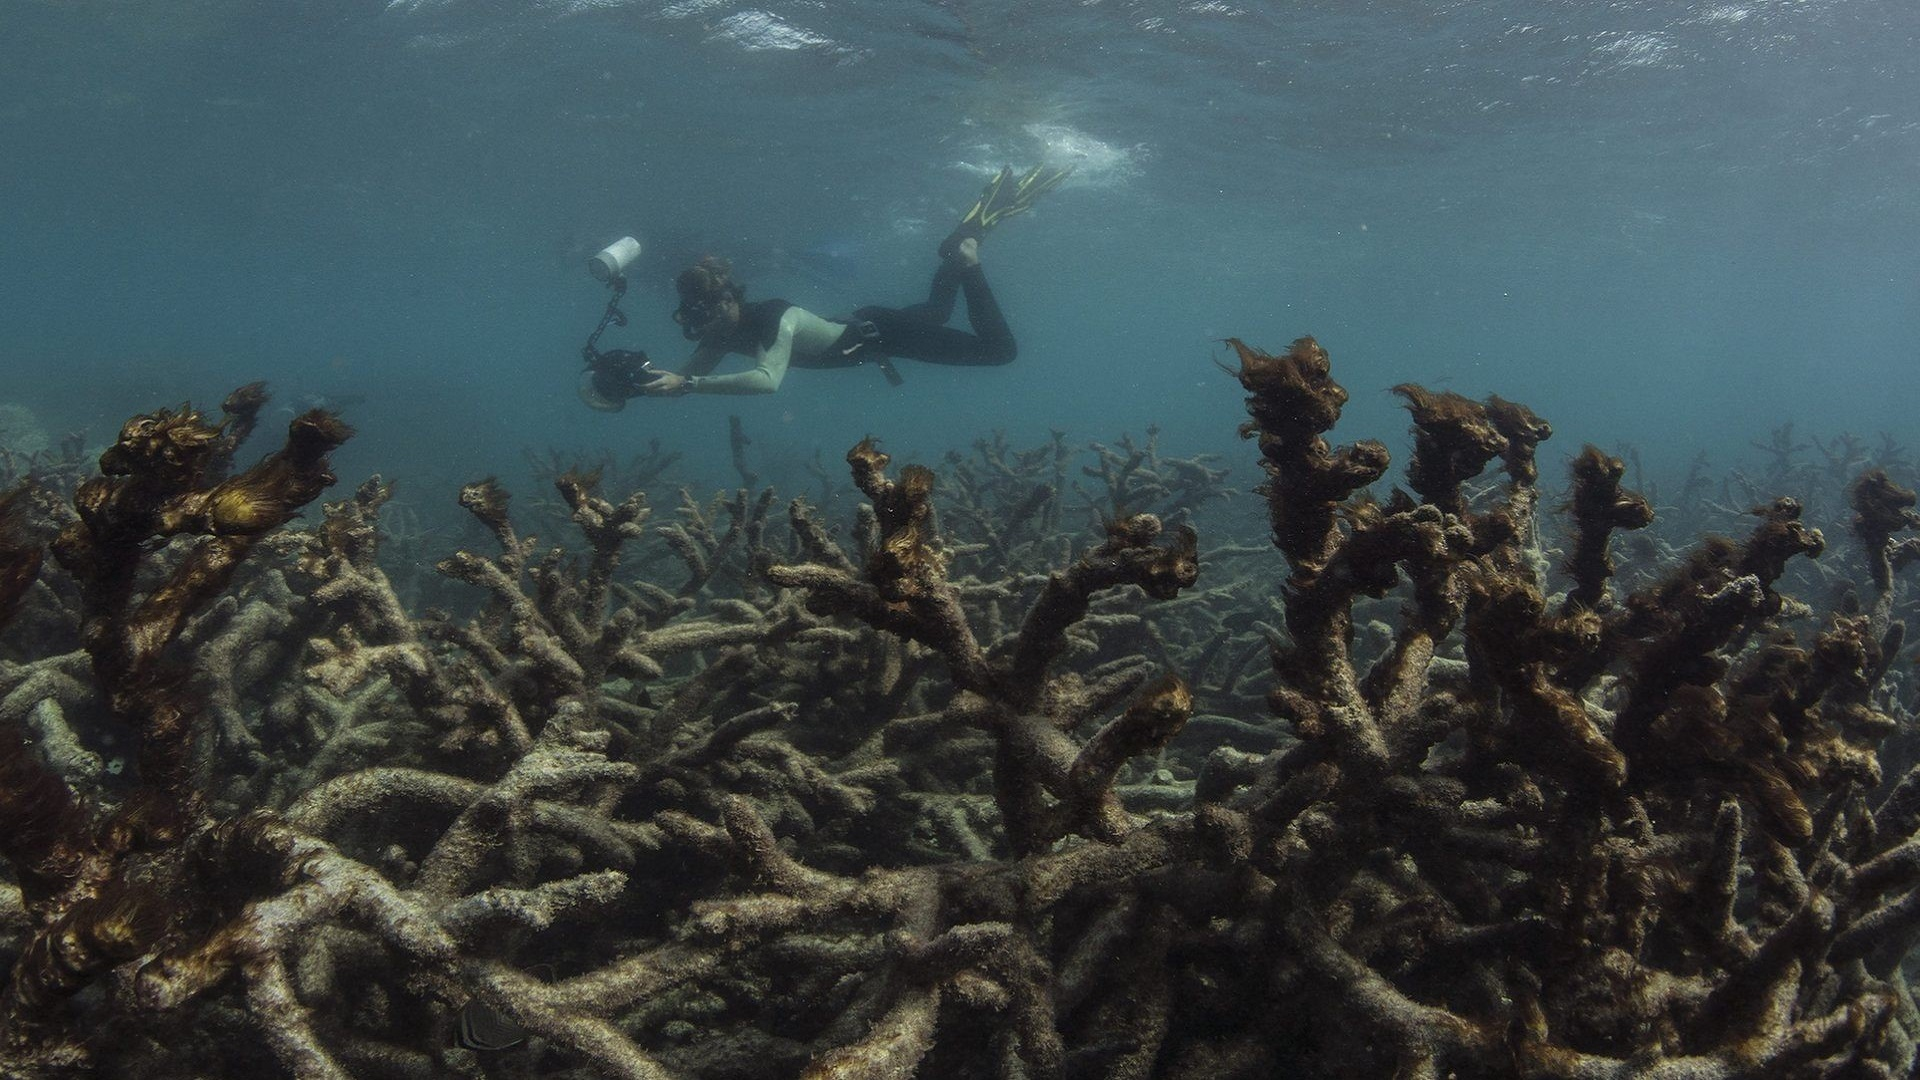 Dead corals coral bleaching increasing from global warming climate change